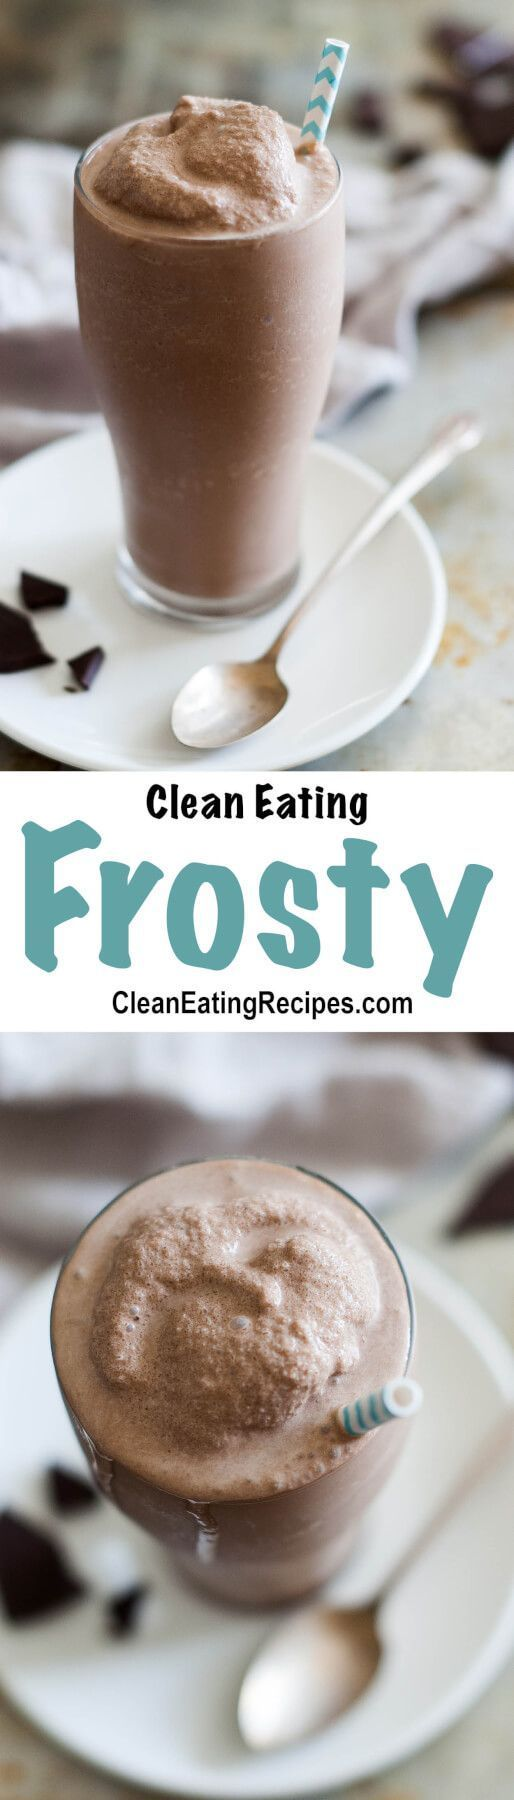 Coconut milk, banana Coconut milk, banana, cocoa powder, vanilla, ice cubes and maybe some honey is all it takes to make this skinny Frosty recipe. https://www.pinterest.com/pin/641200065668804153/